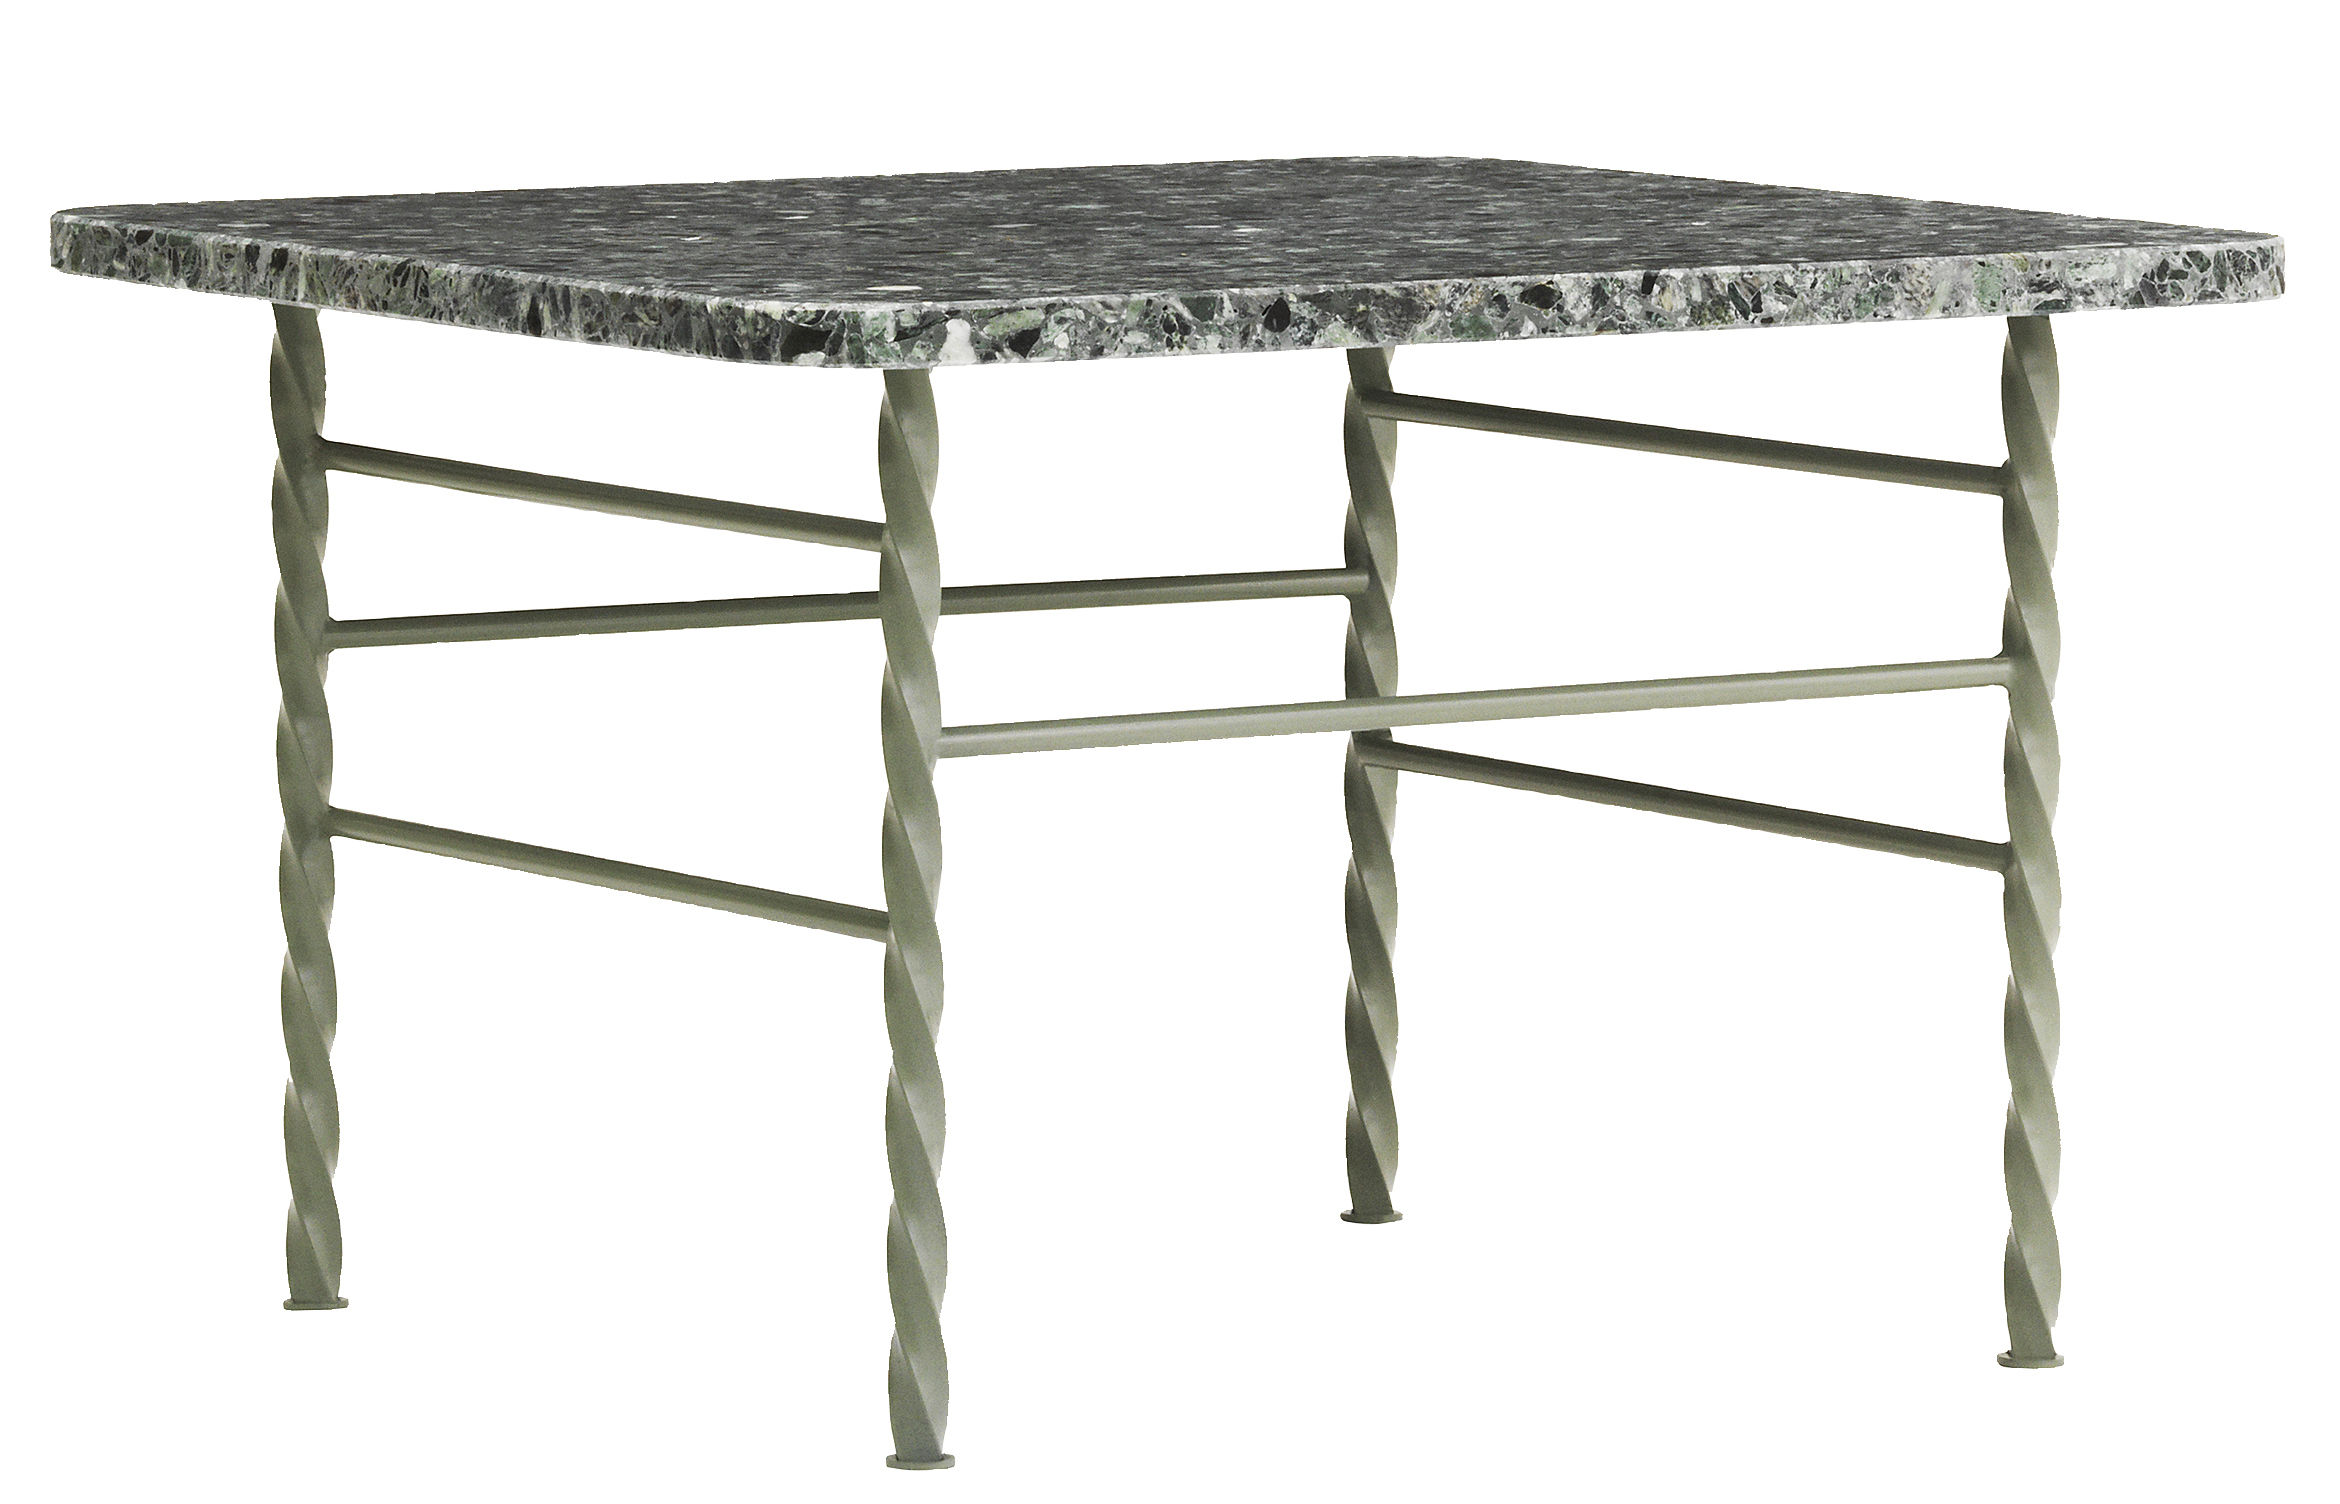 Furniture - Coffee Tables - Terra Large Coffee table - 55 x 55 cm / Terrazzo by Normann Copenhagen - Green - Epoxy lacquered steel, Terrazzo